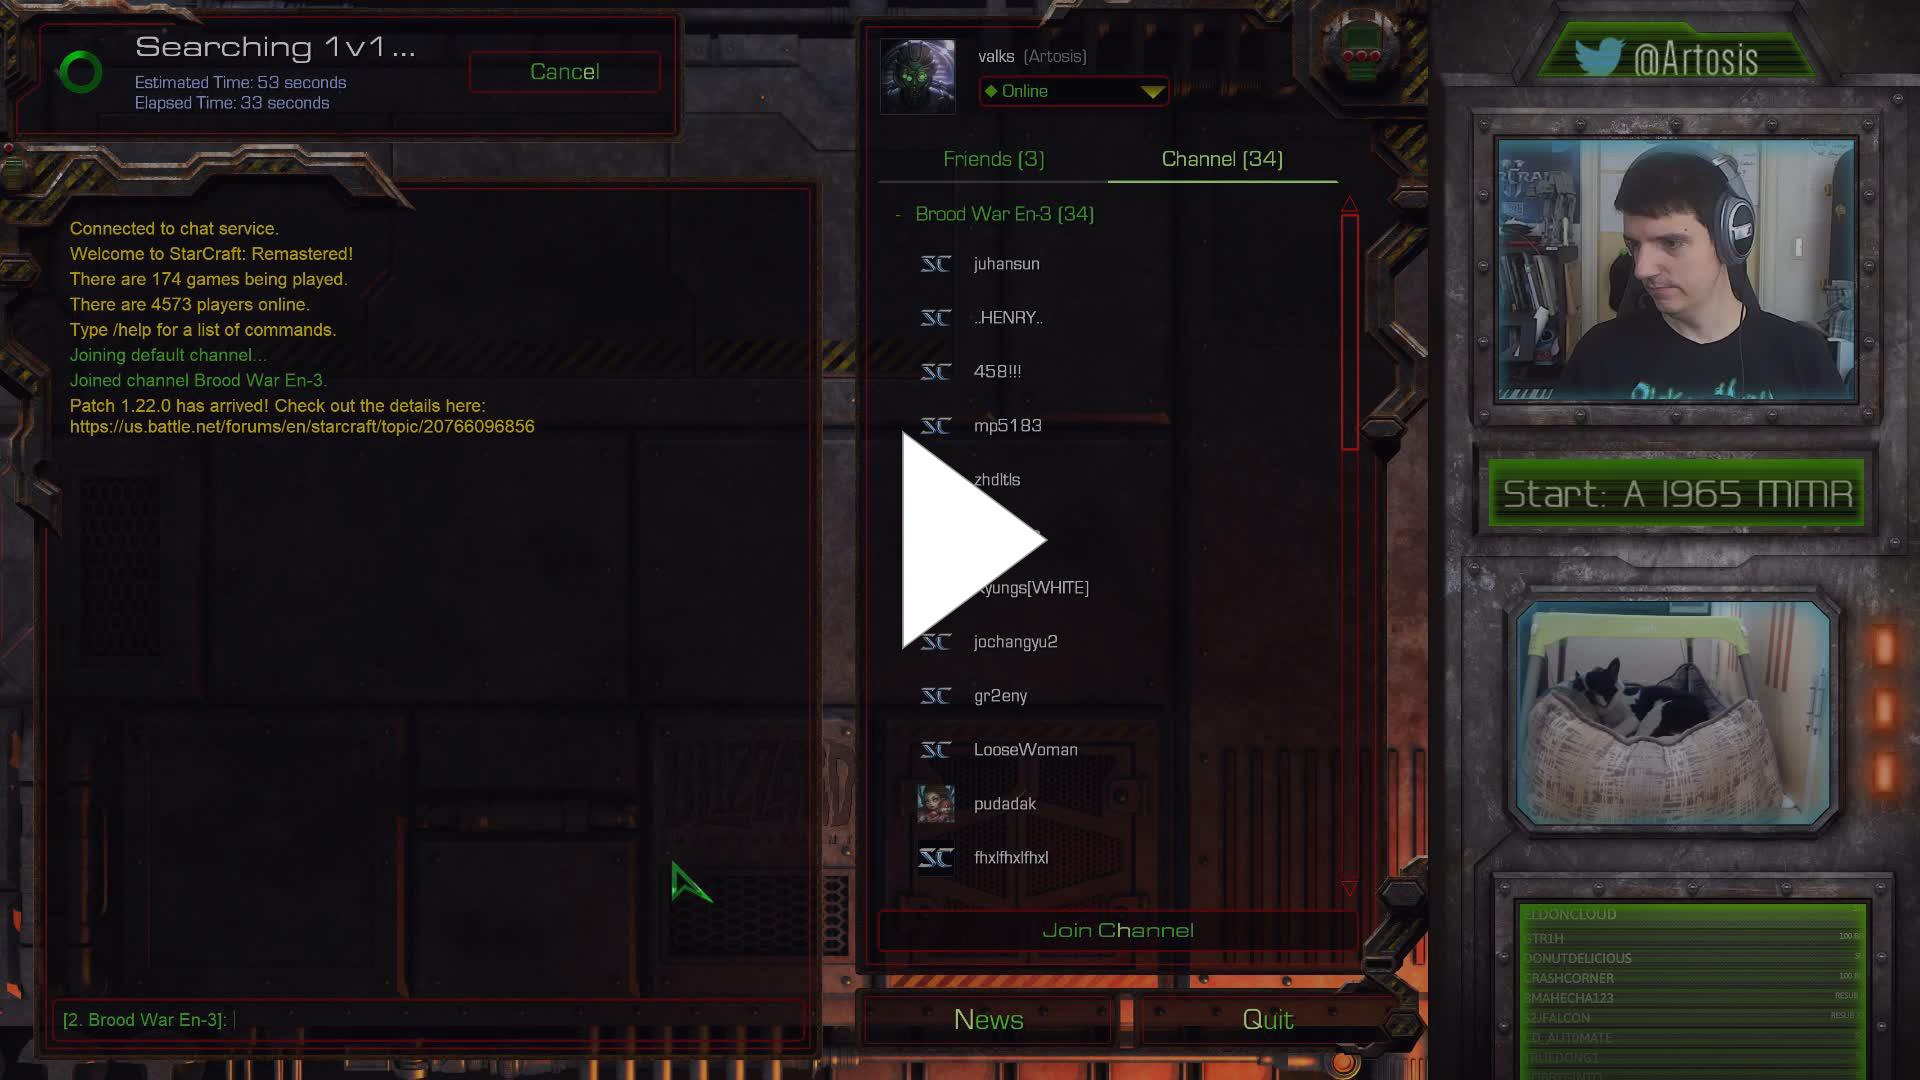 Artosis - IS TODAY THE DAY? - Twitch